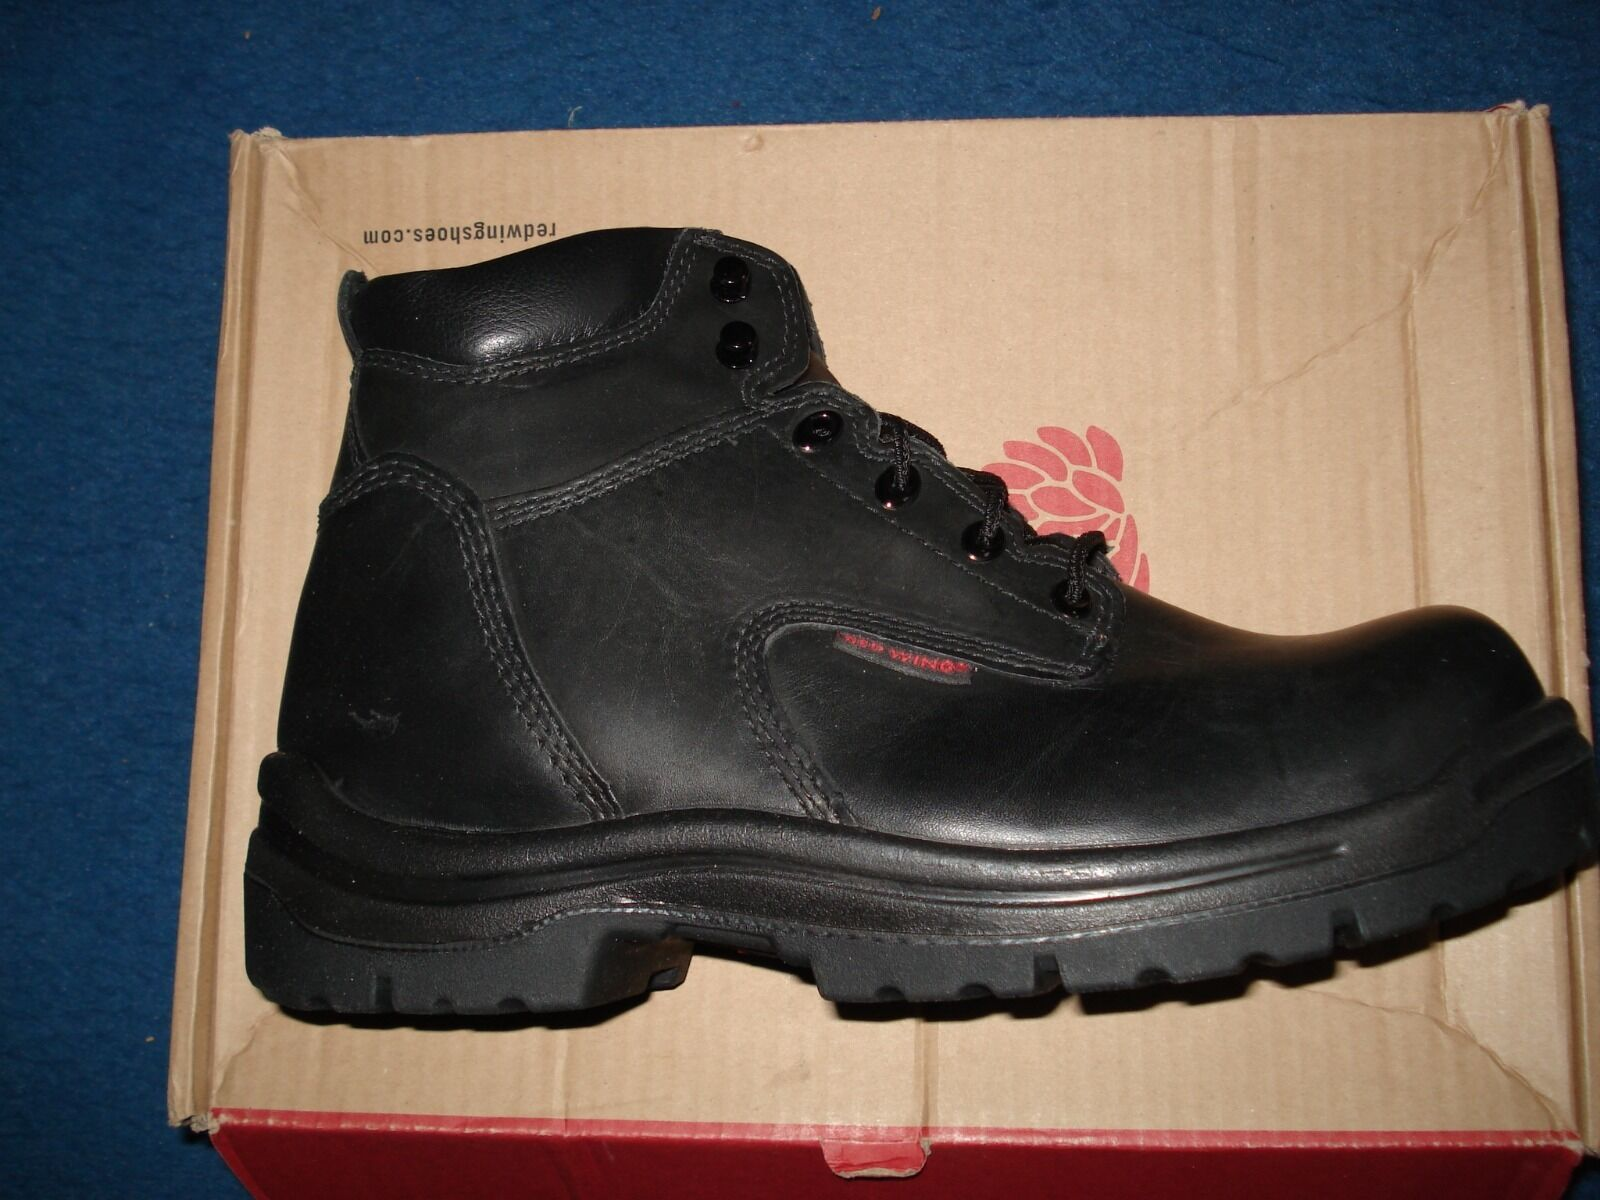 Rouge Wing aucun Metalic Toe Chaussures 6  Taille 09.0E2 UK.